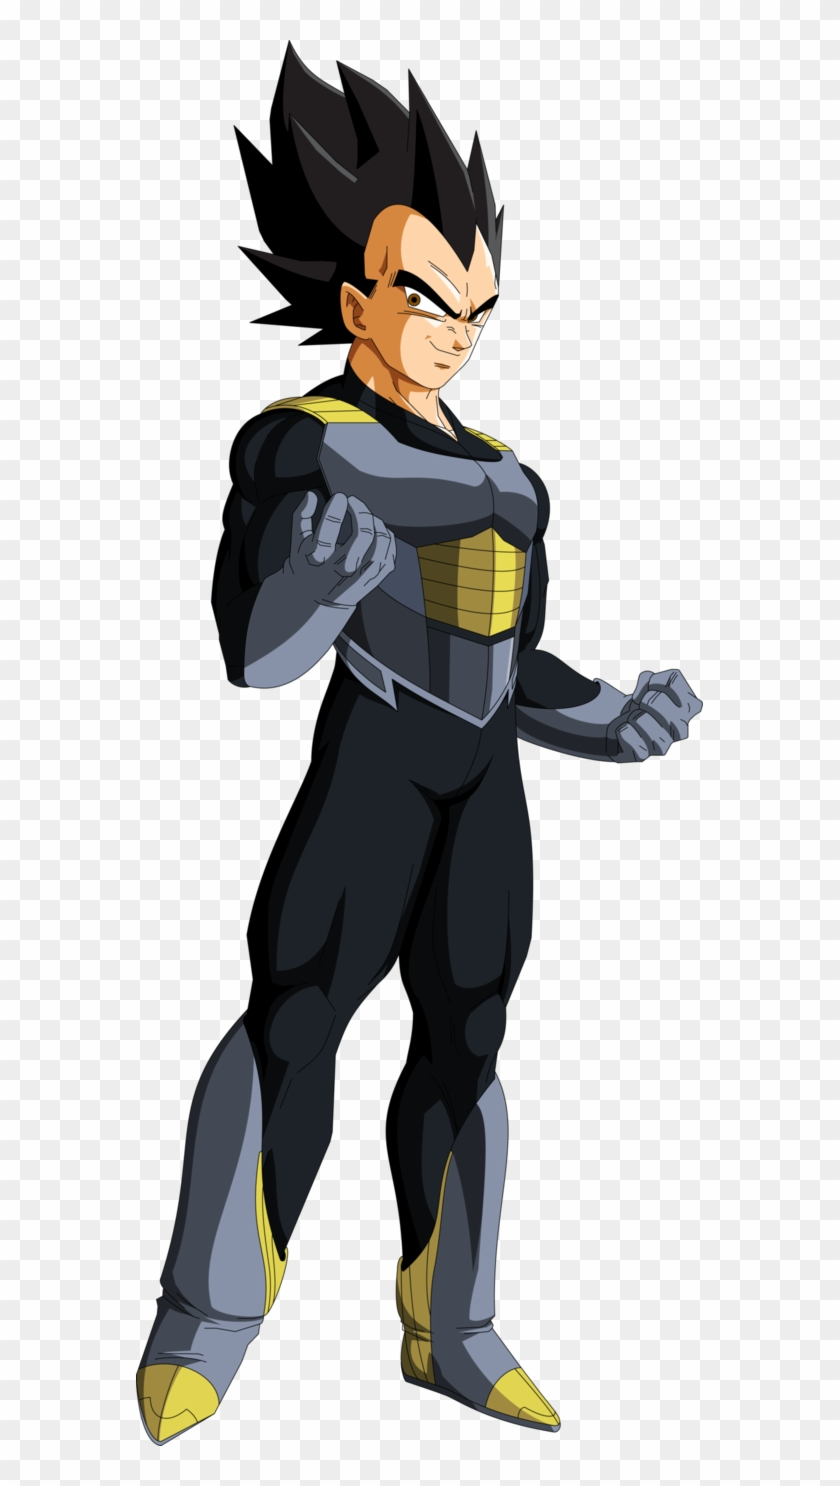 You Know That Armor That Vegeta Wore In His 'cough' - Vegeta New Armor #527165